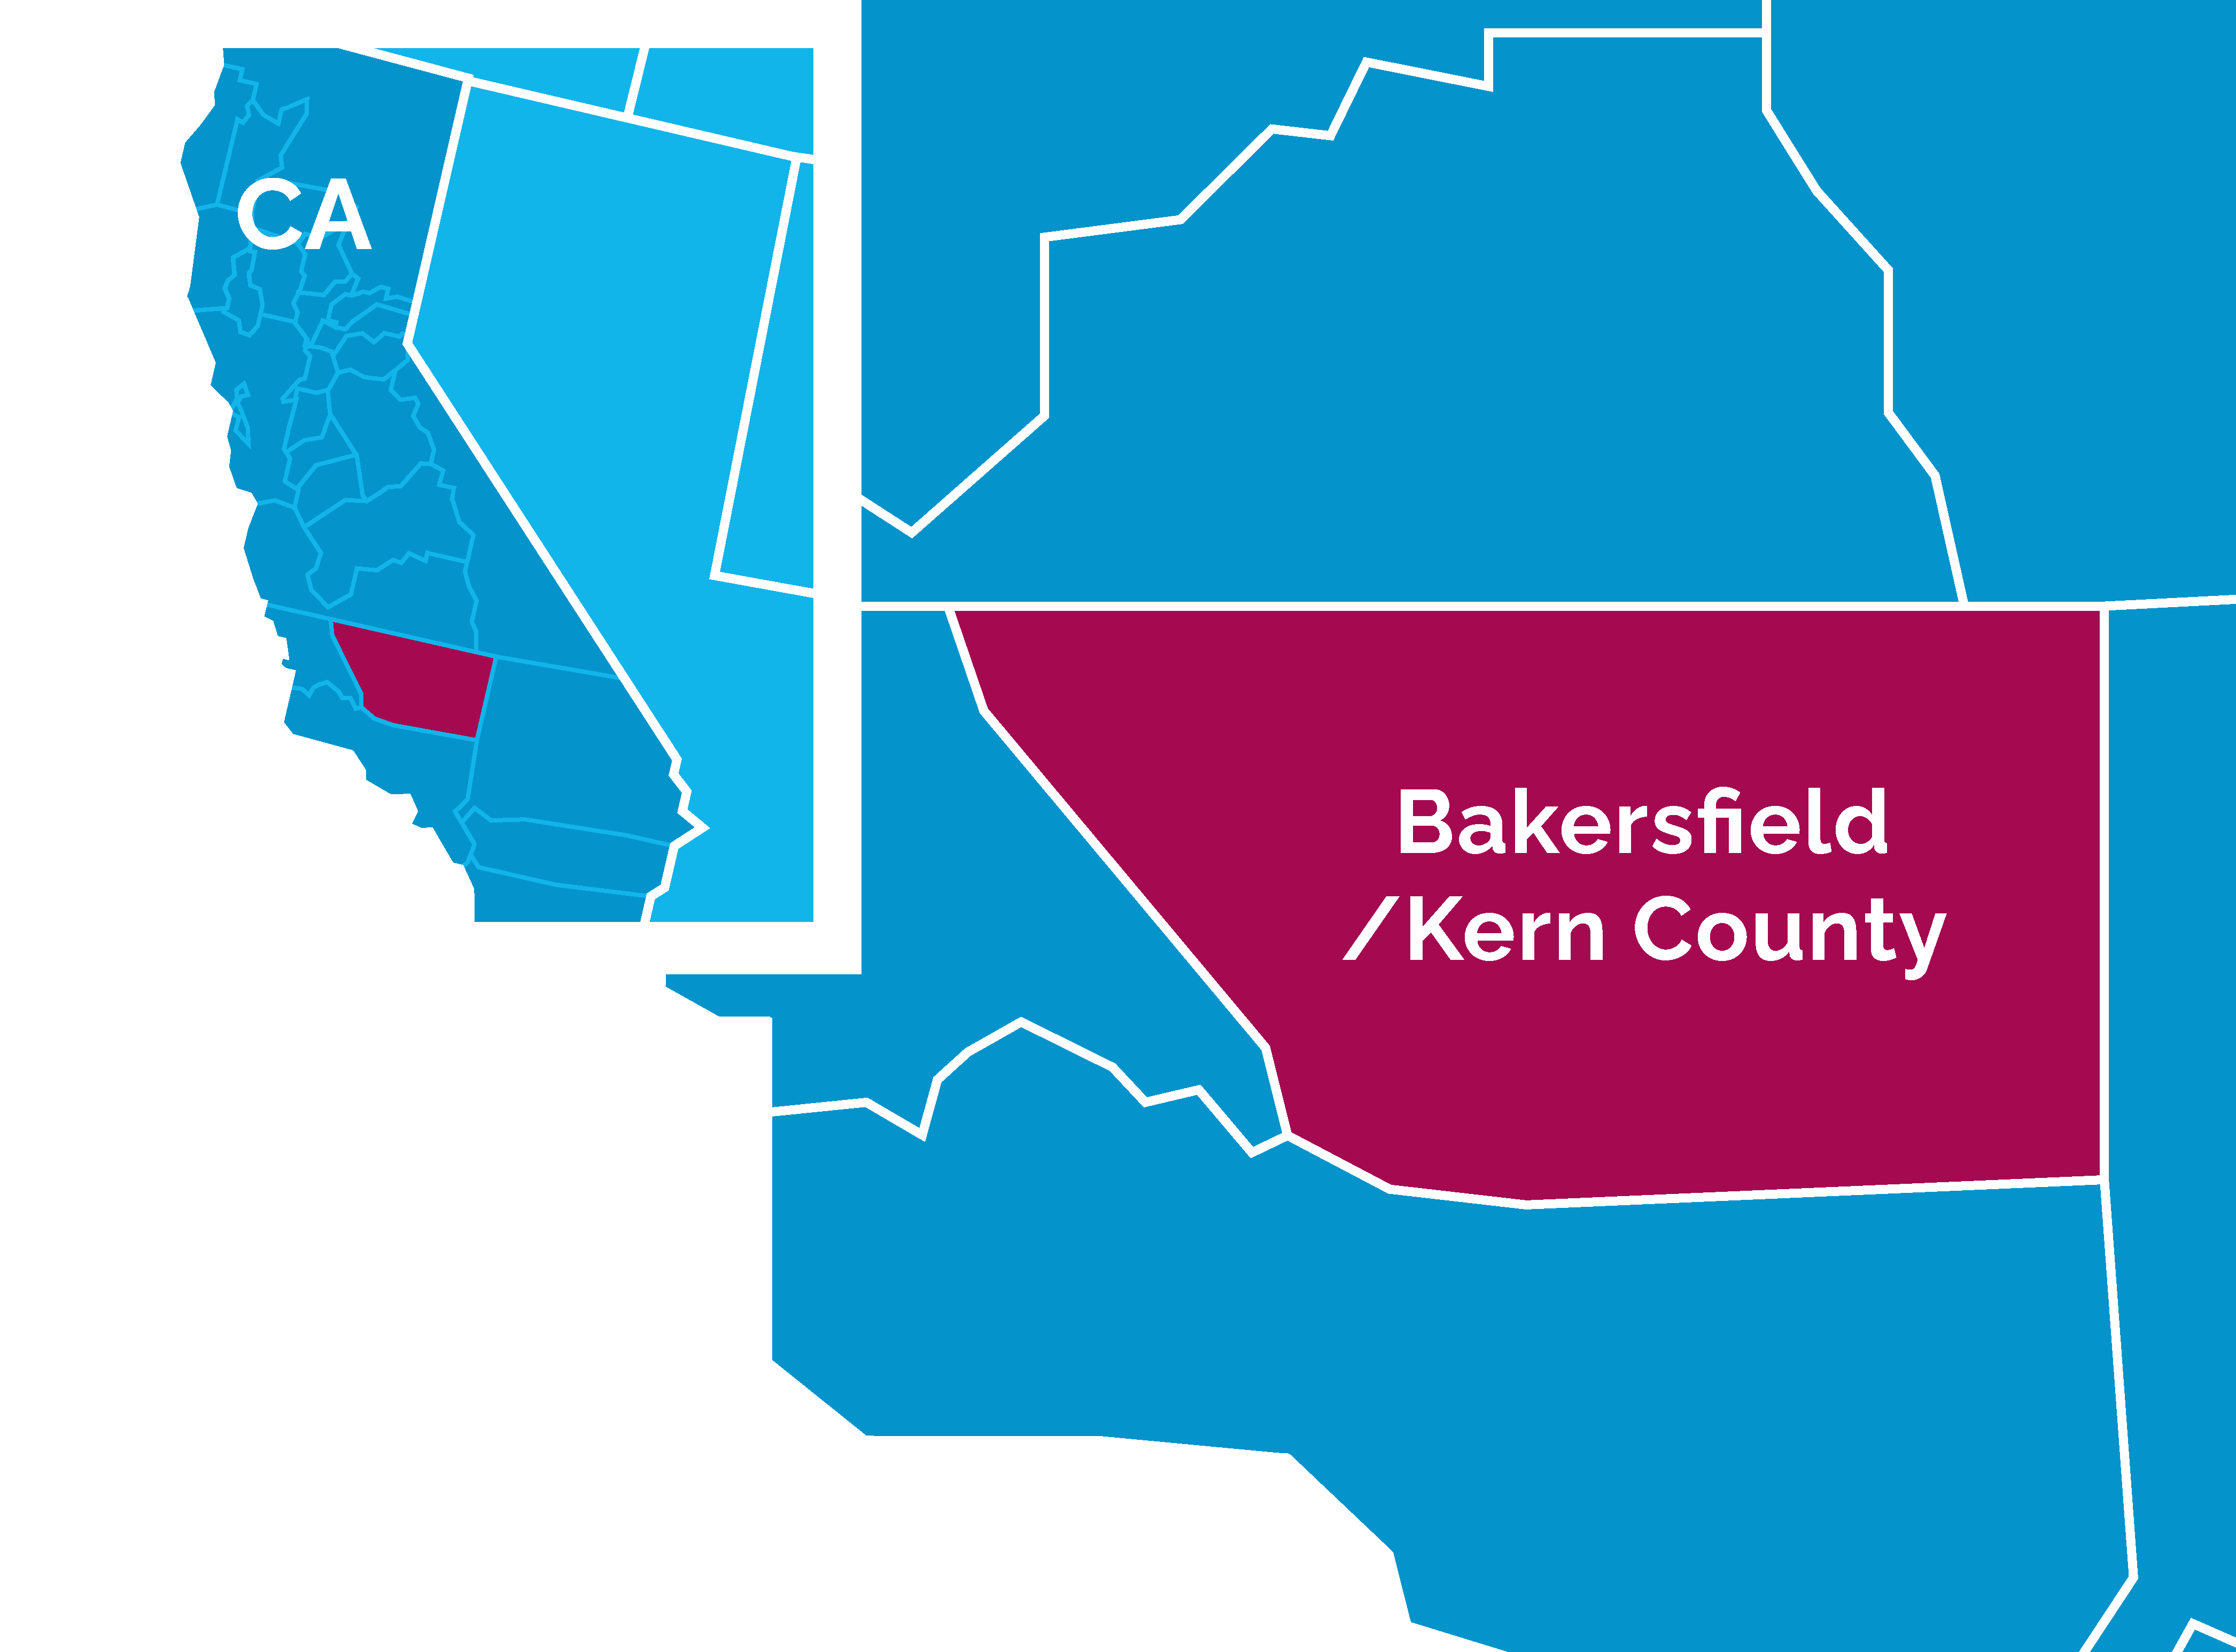 Bakersfield and Kern County Map